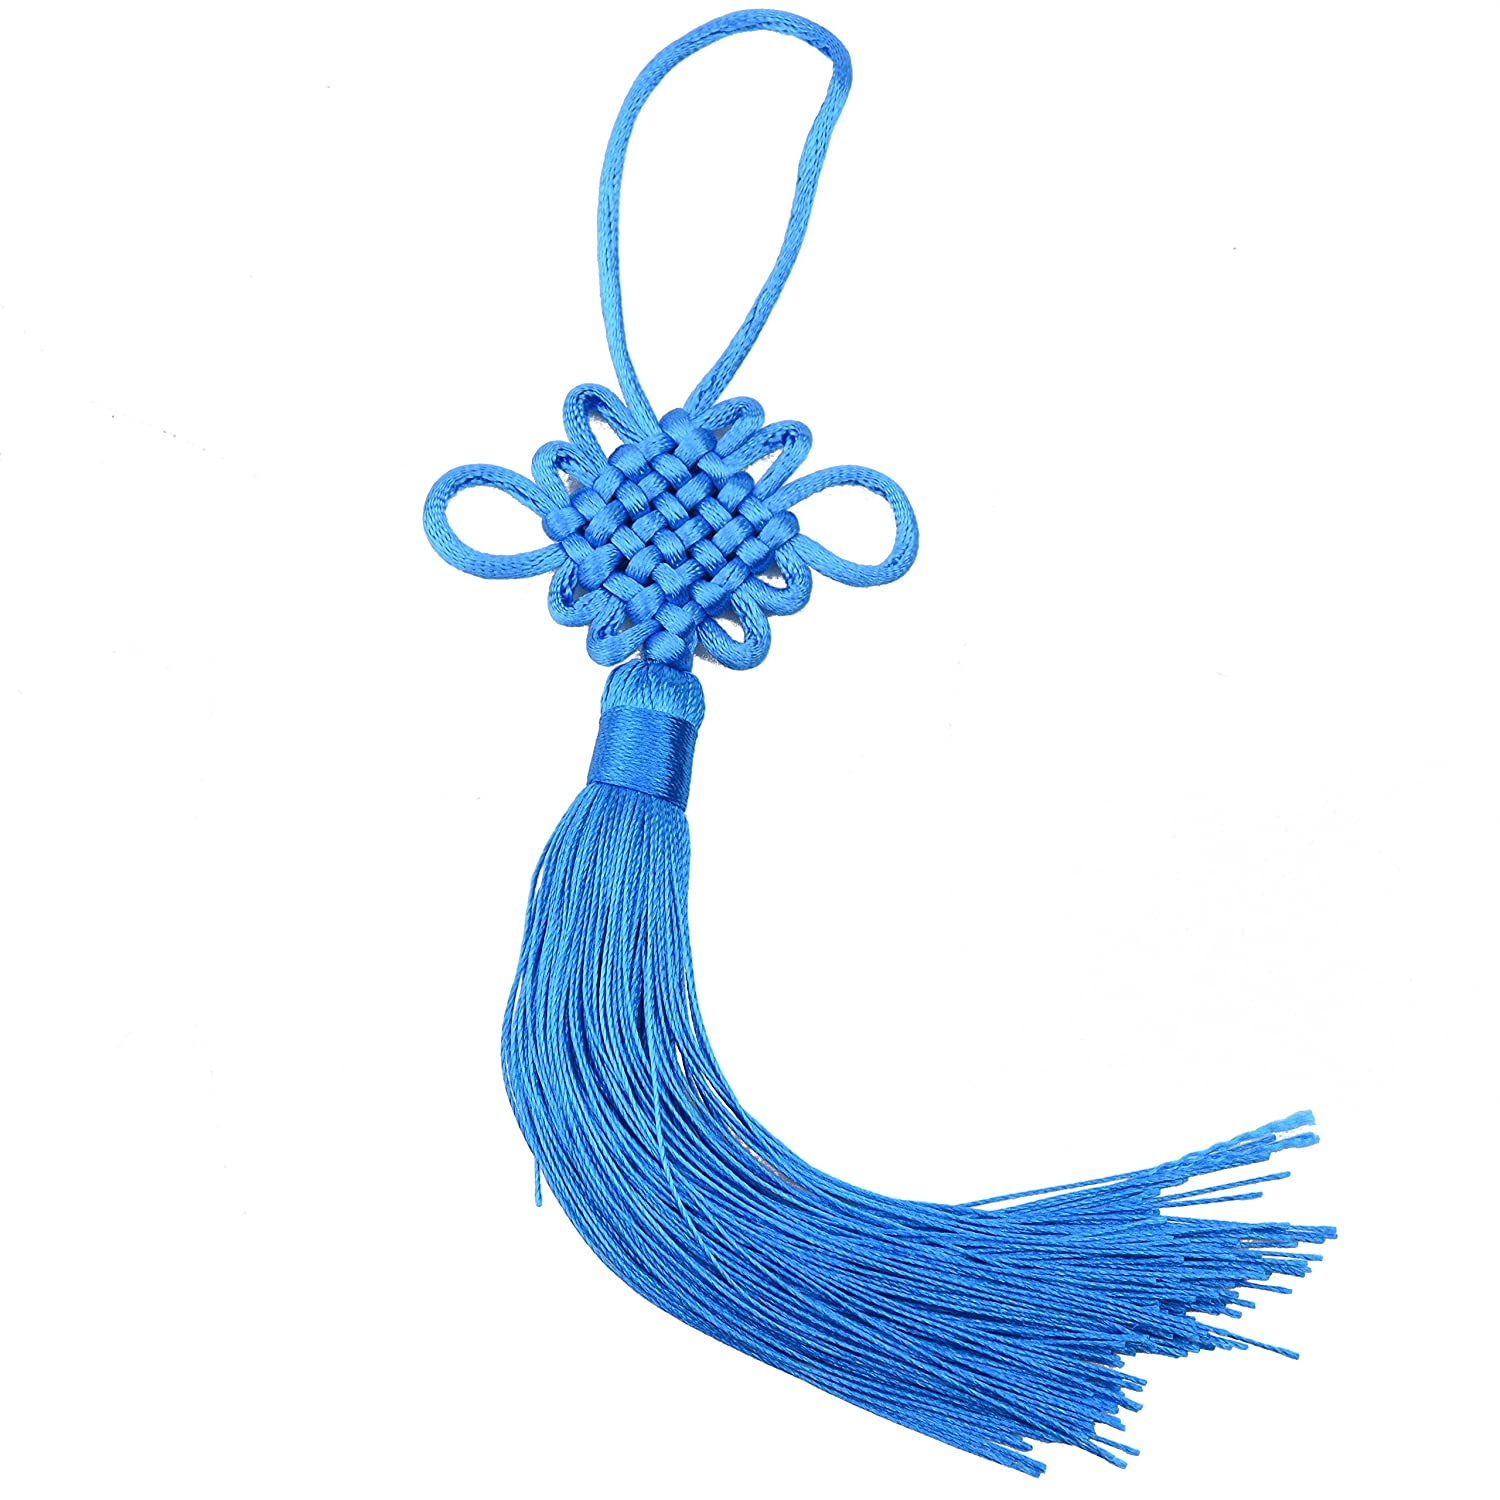 10pcs 8.5 Inch Handmade Silky Floss Chinese Tassel with Satin Silk Made Chinese Knots for Door and Car Handing Decoration, DIY Craft (Coffee) Makhry